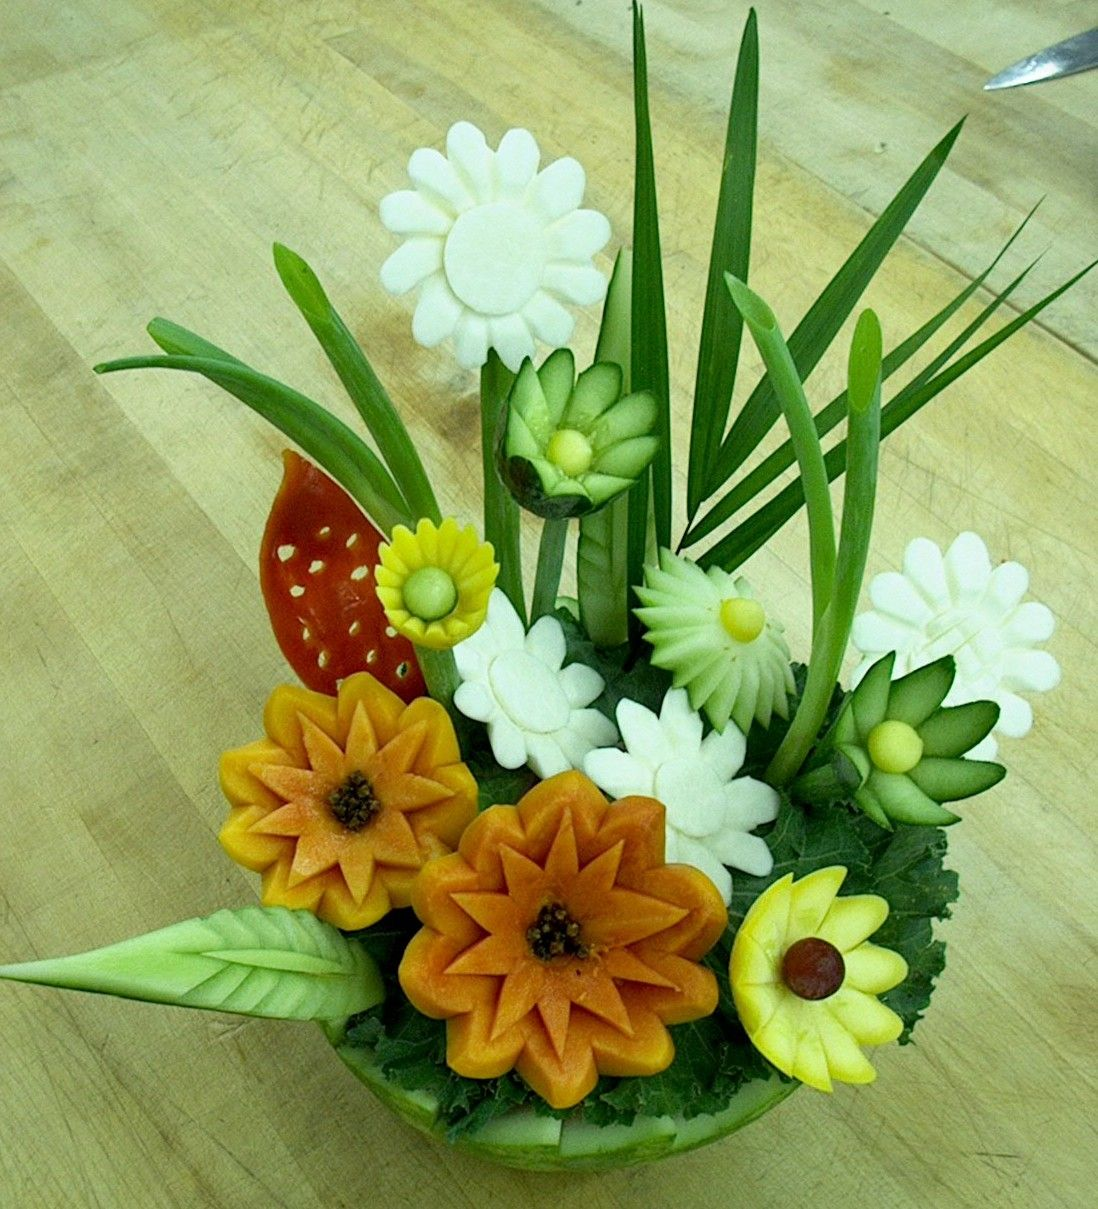 http://culinarydelightcatering.com/images/fruit-and-veggie-carving-flowers.jpg